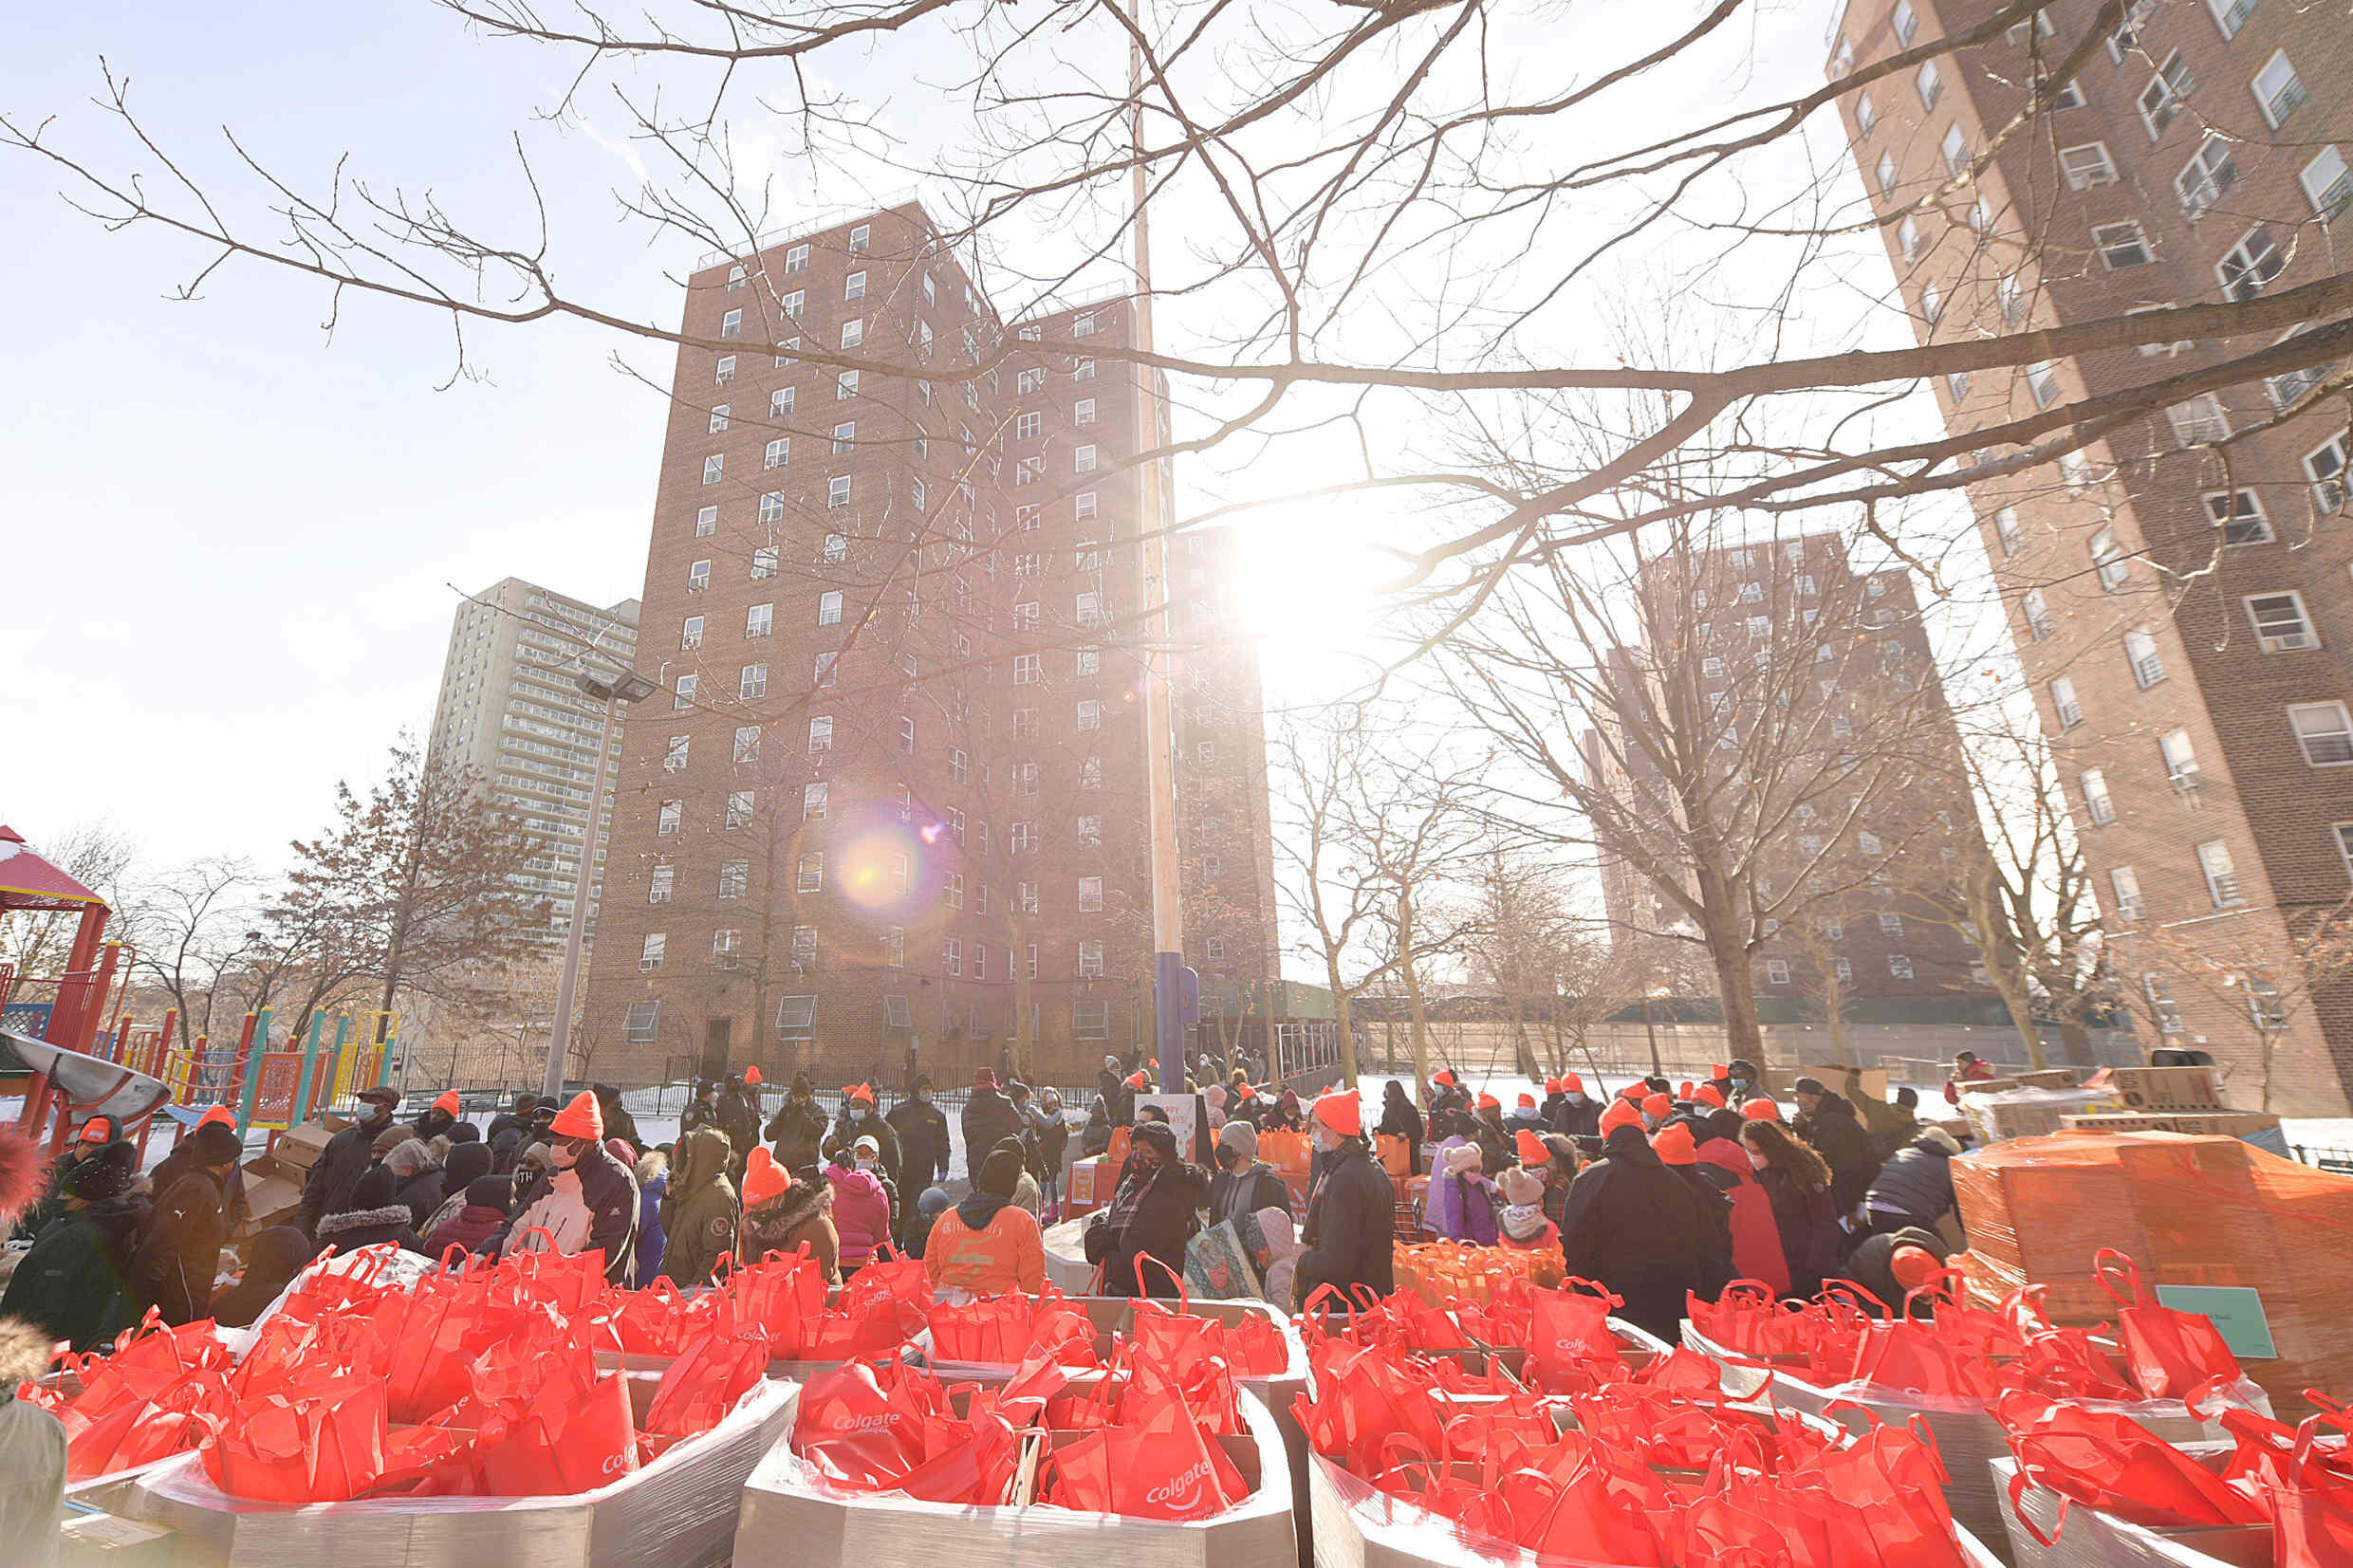 063_1292136817_New-York_banque-alimentaire